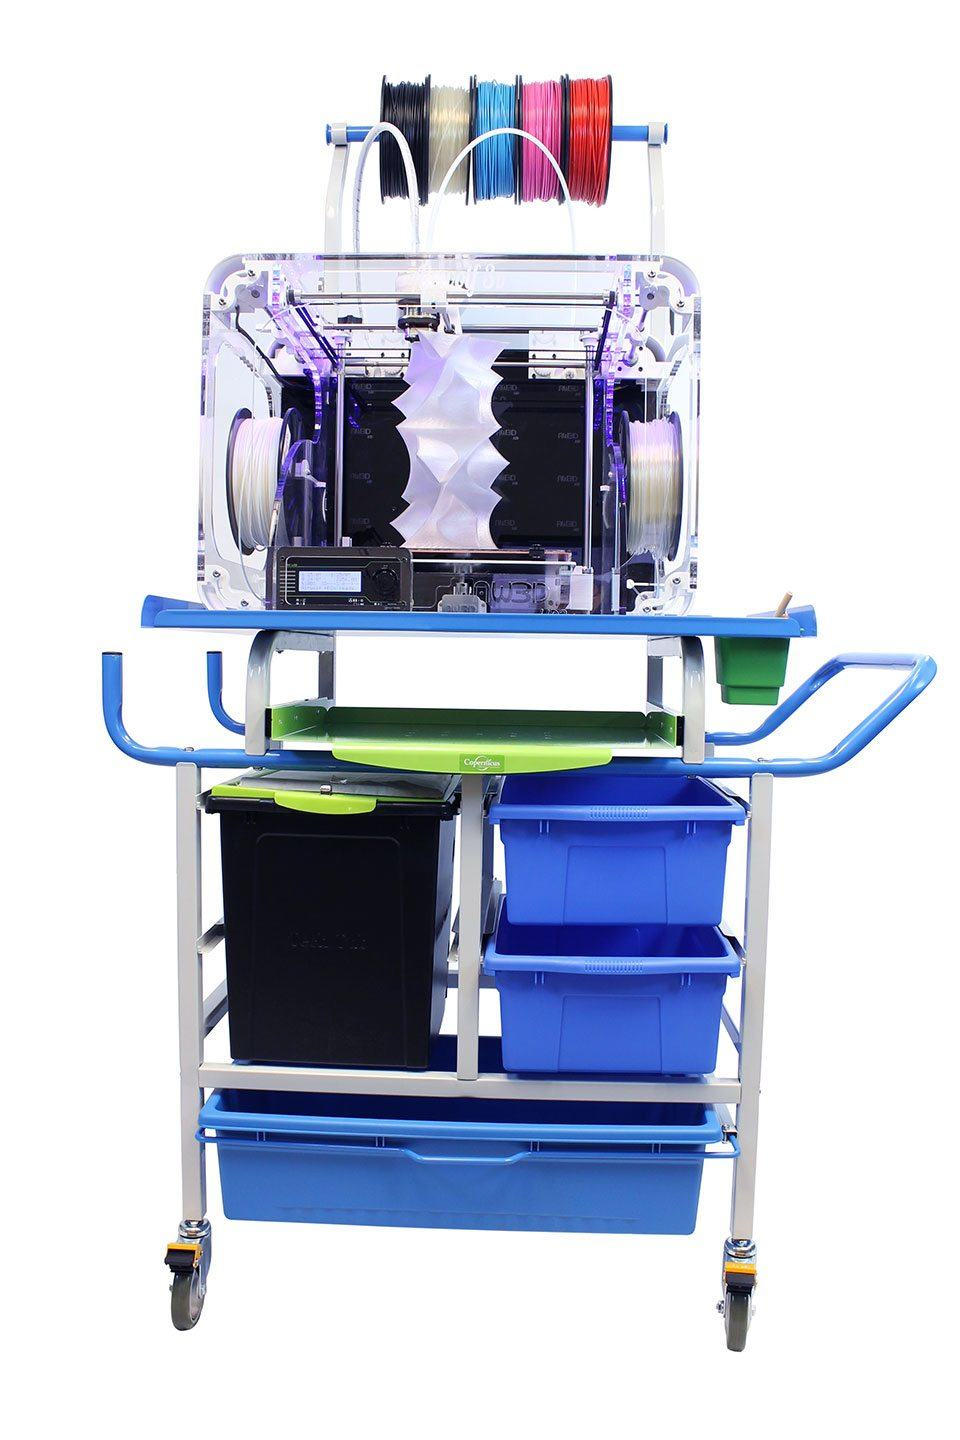 Airwolf AXIOM3 3d printer for schools and education